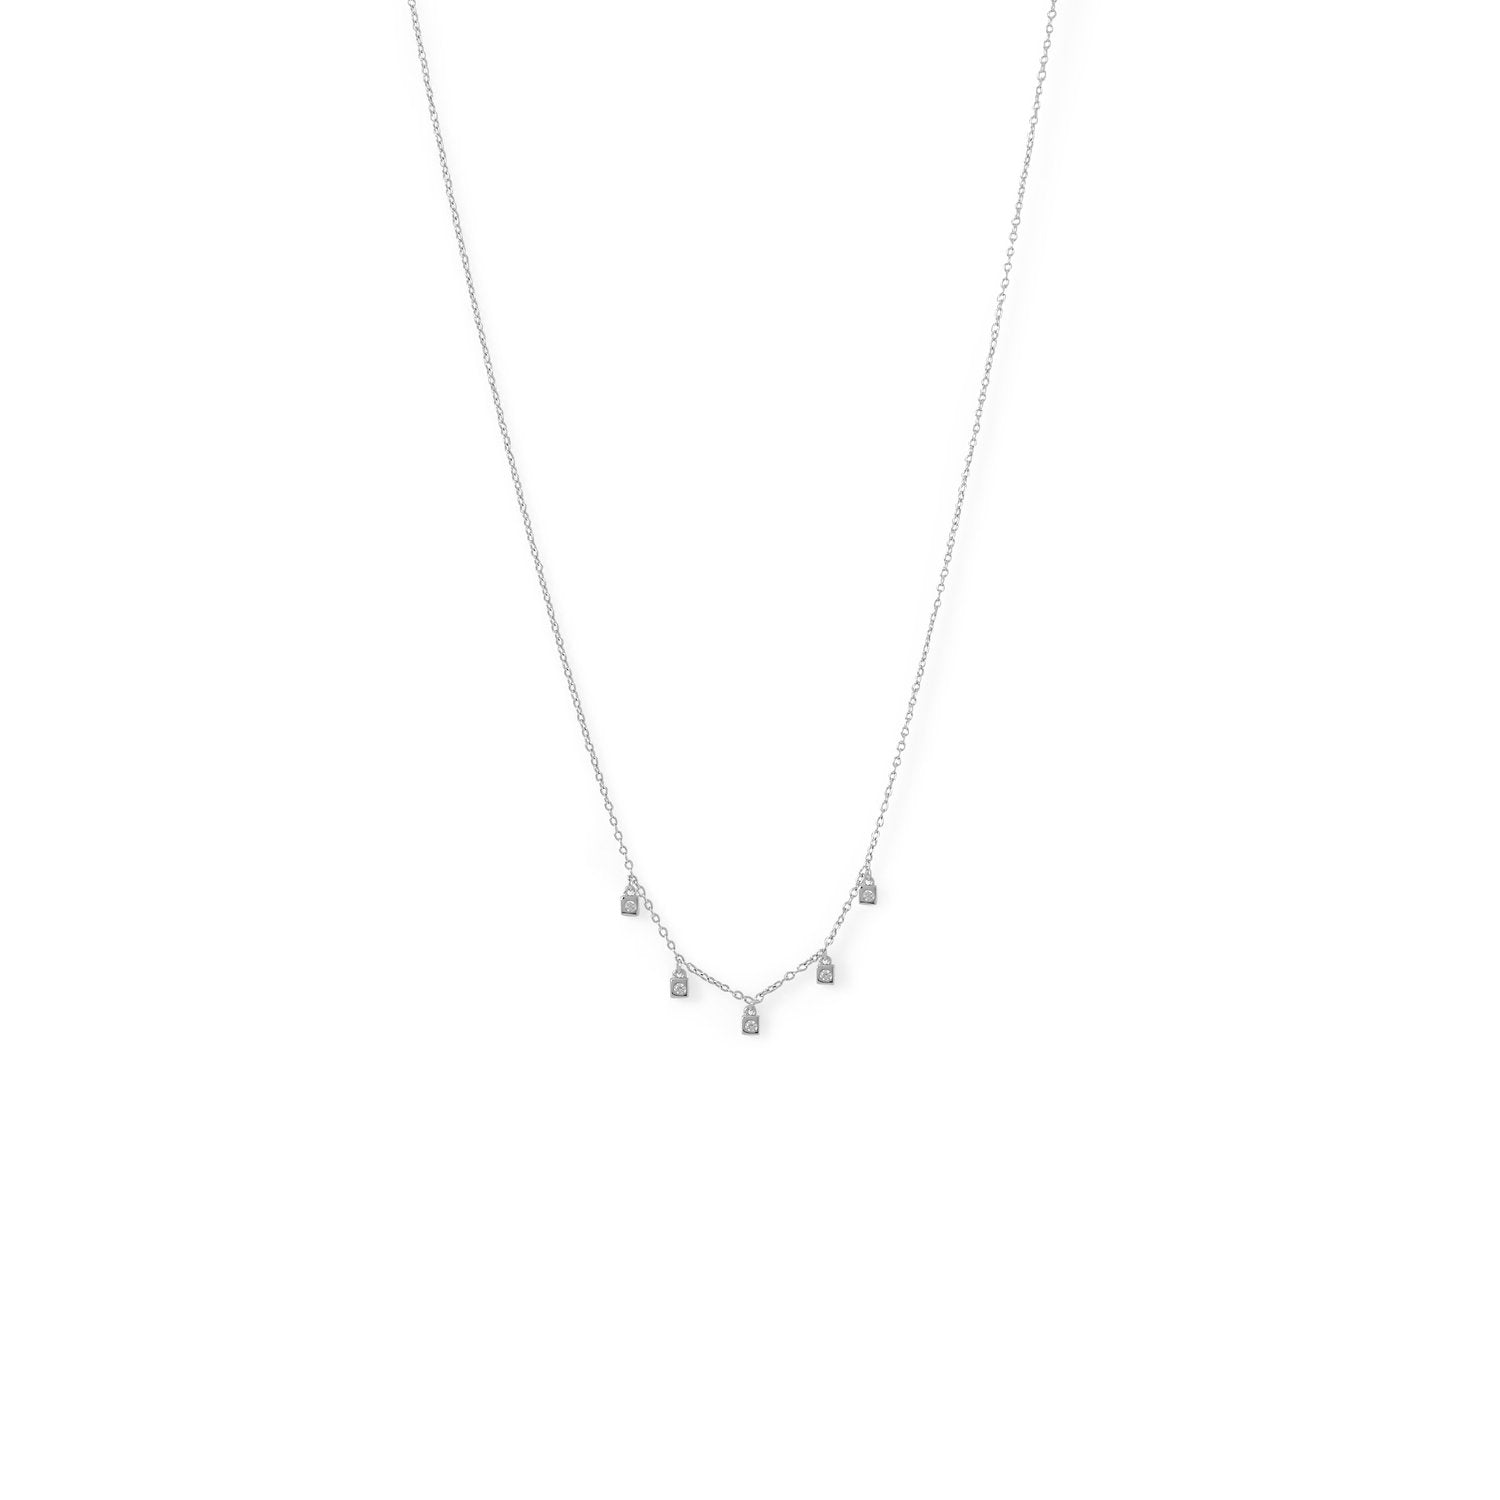 Rhodium Plated Dainty CZ Charm Necklace - the-southern-magnolia-too